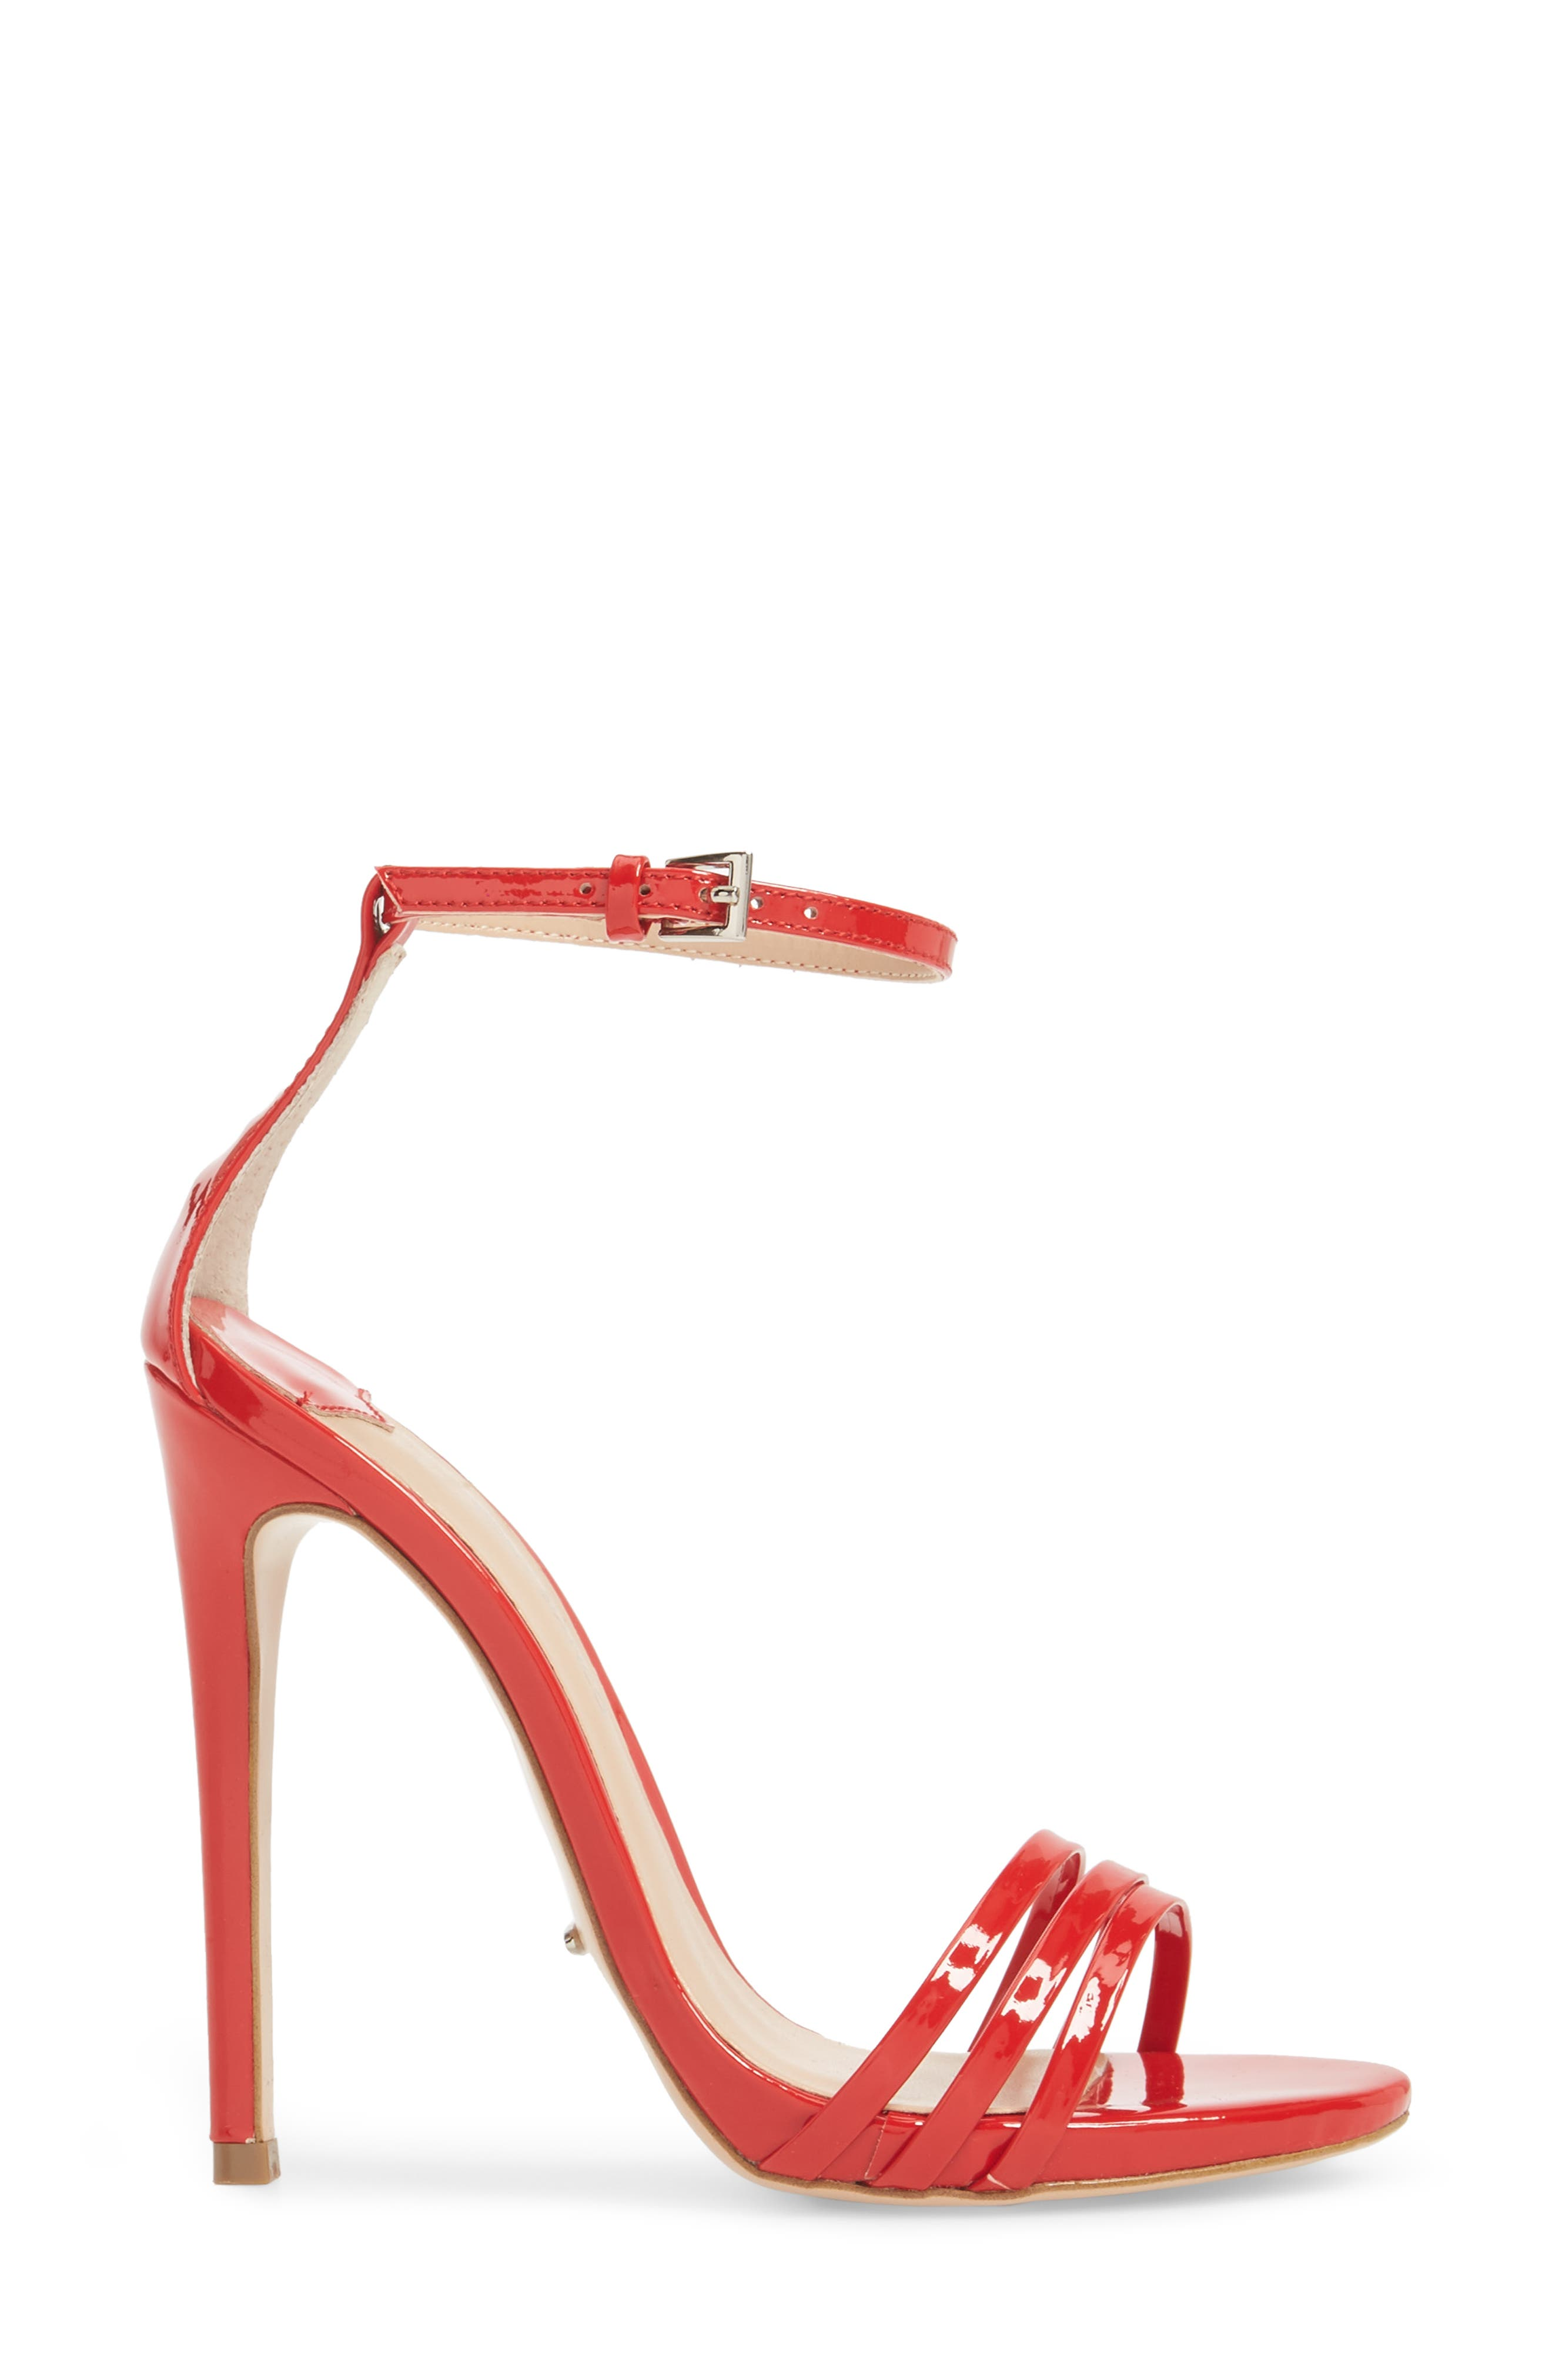 Aroma Strappy Sandal,                             Alternate thumbnail 6, color,                             Red Patent Leather